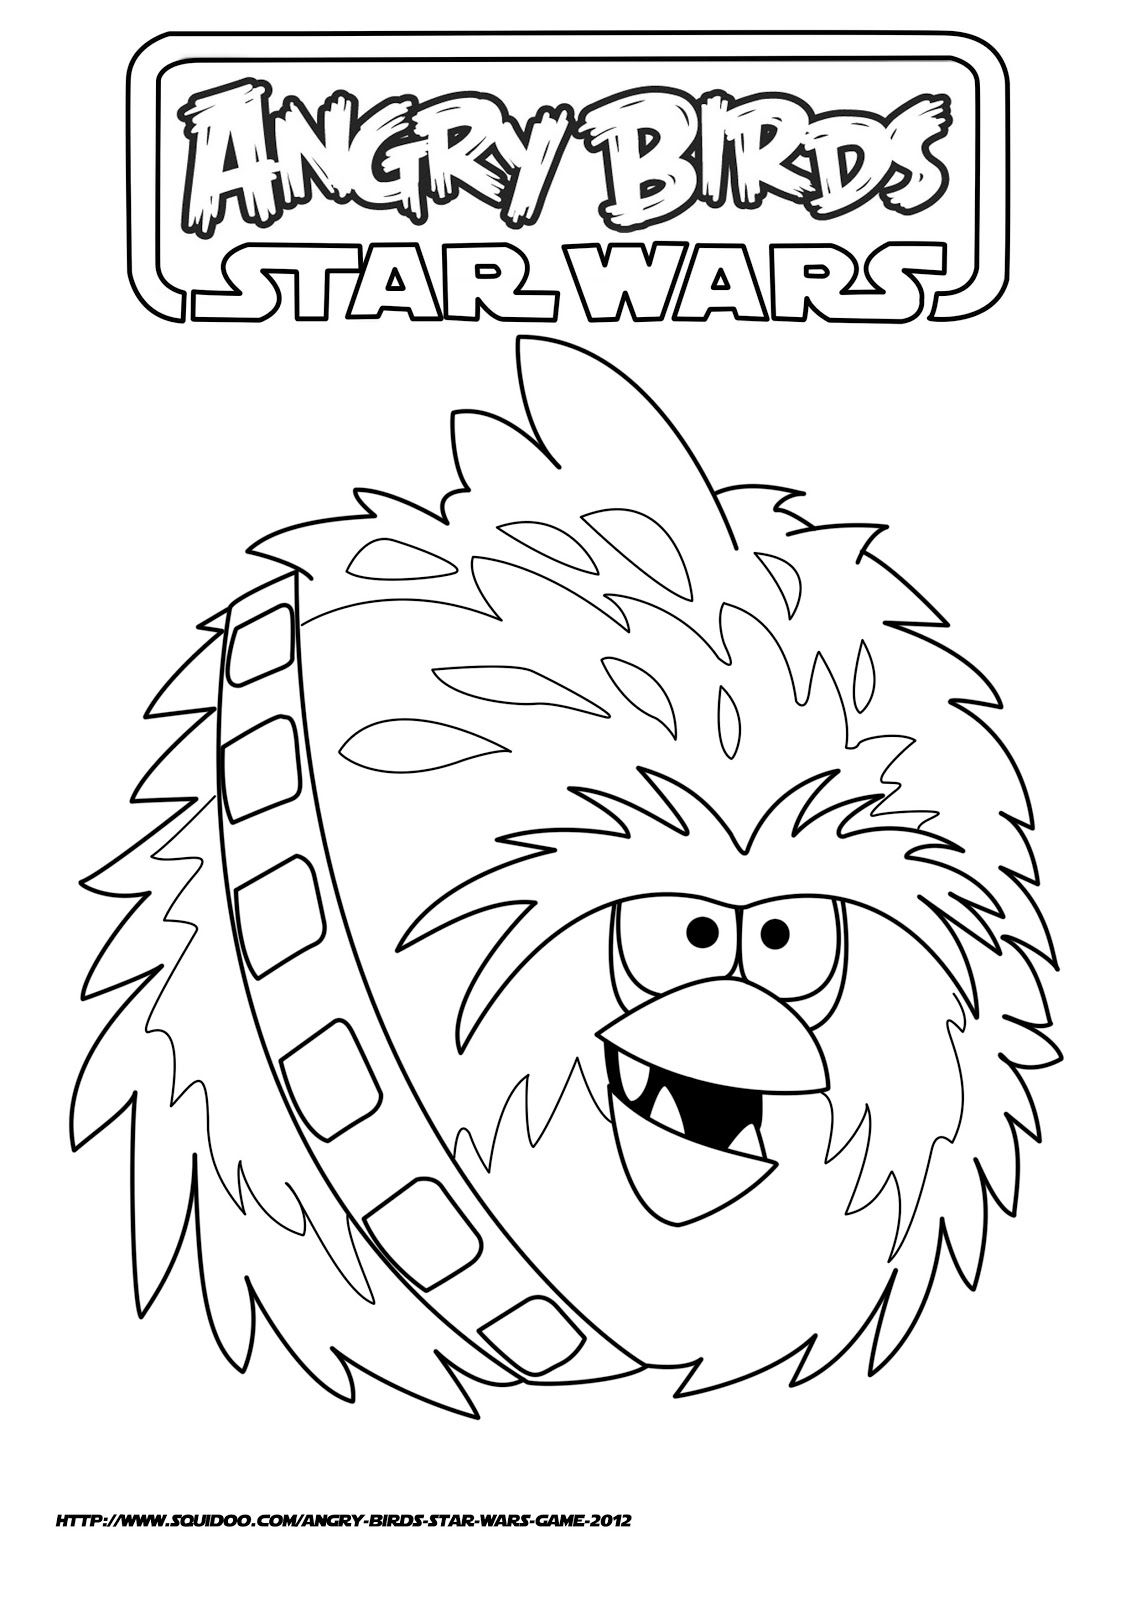 Lego Star Wars Yoda Coloring Pages Star Wars Yoda With